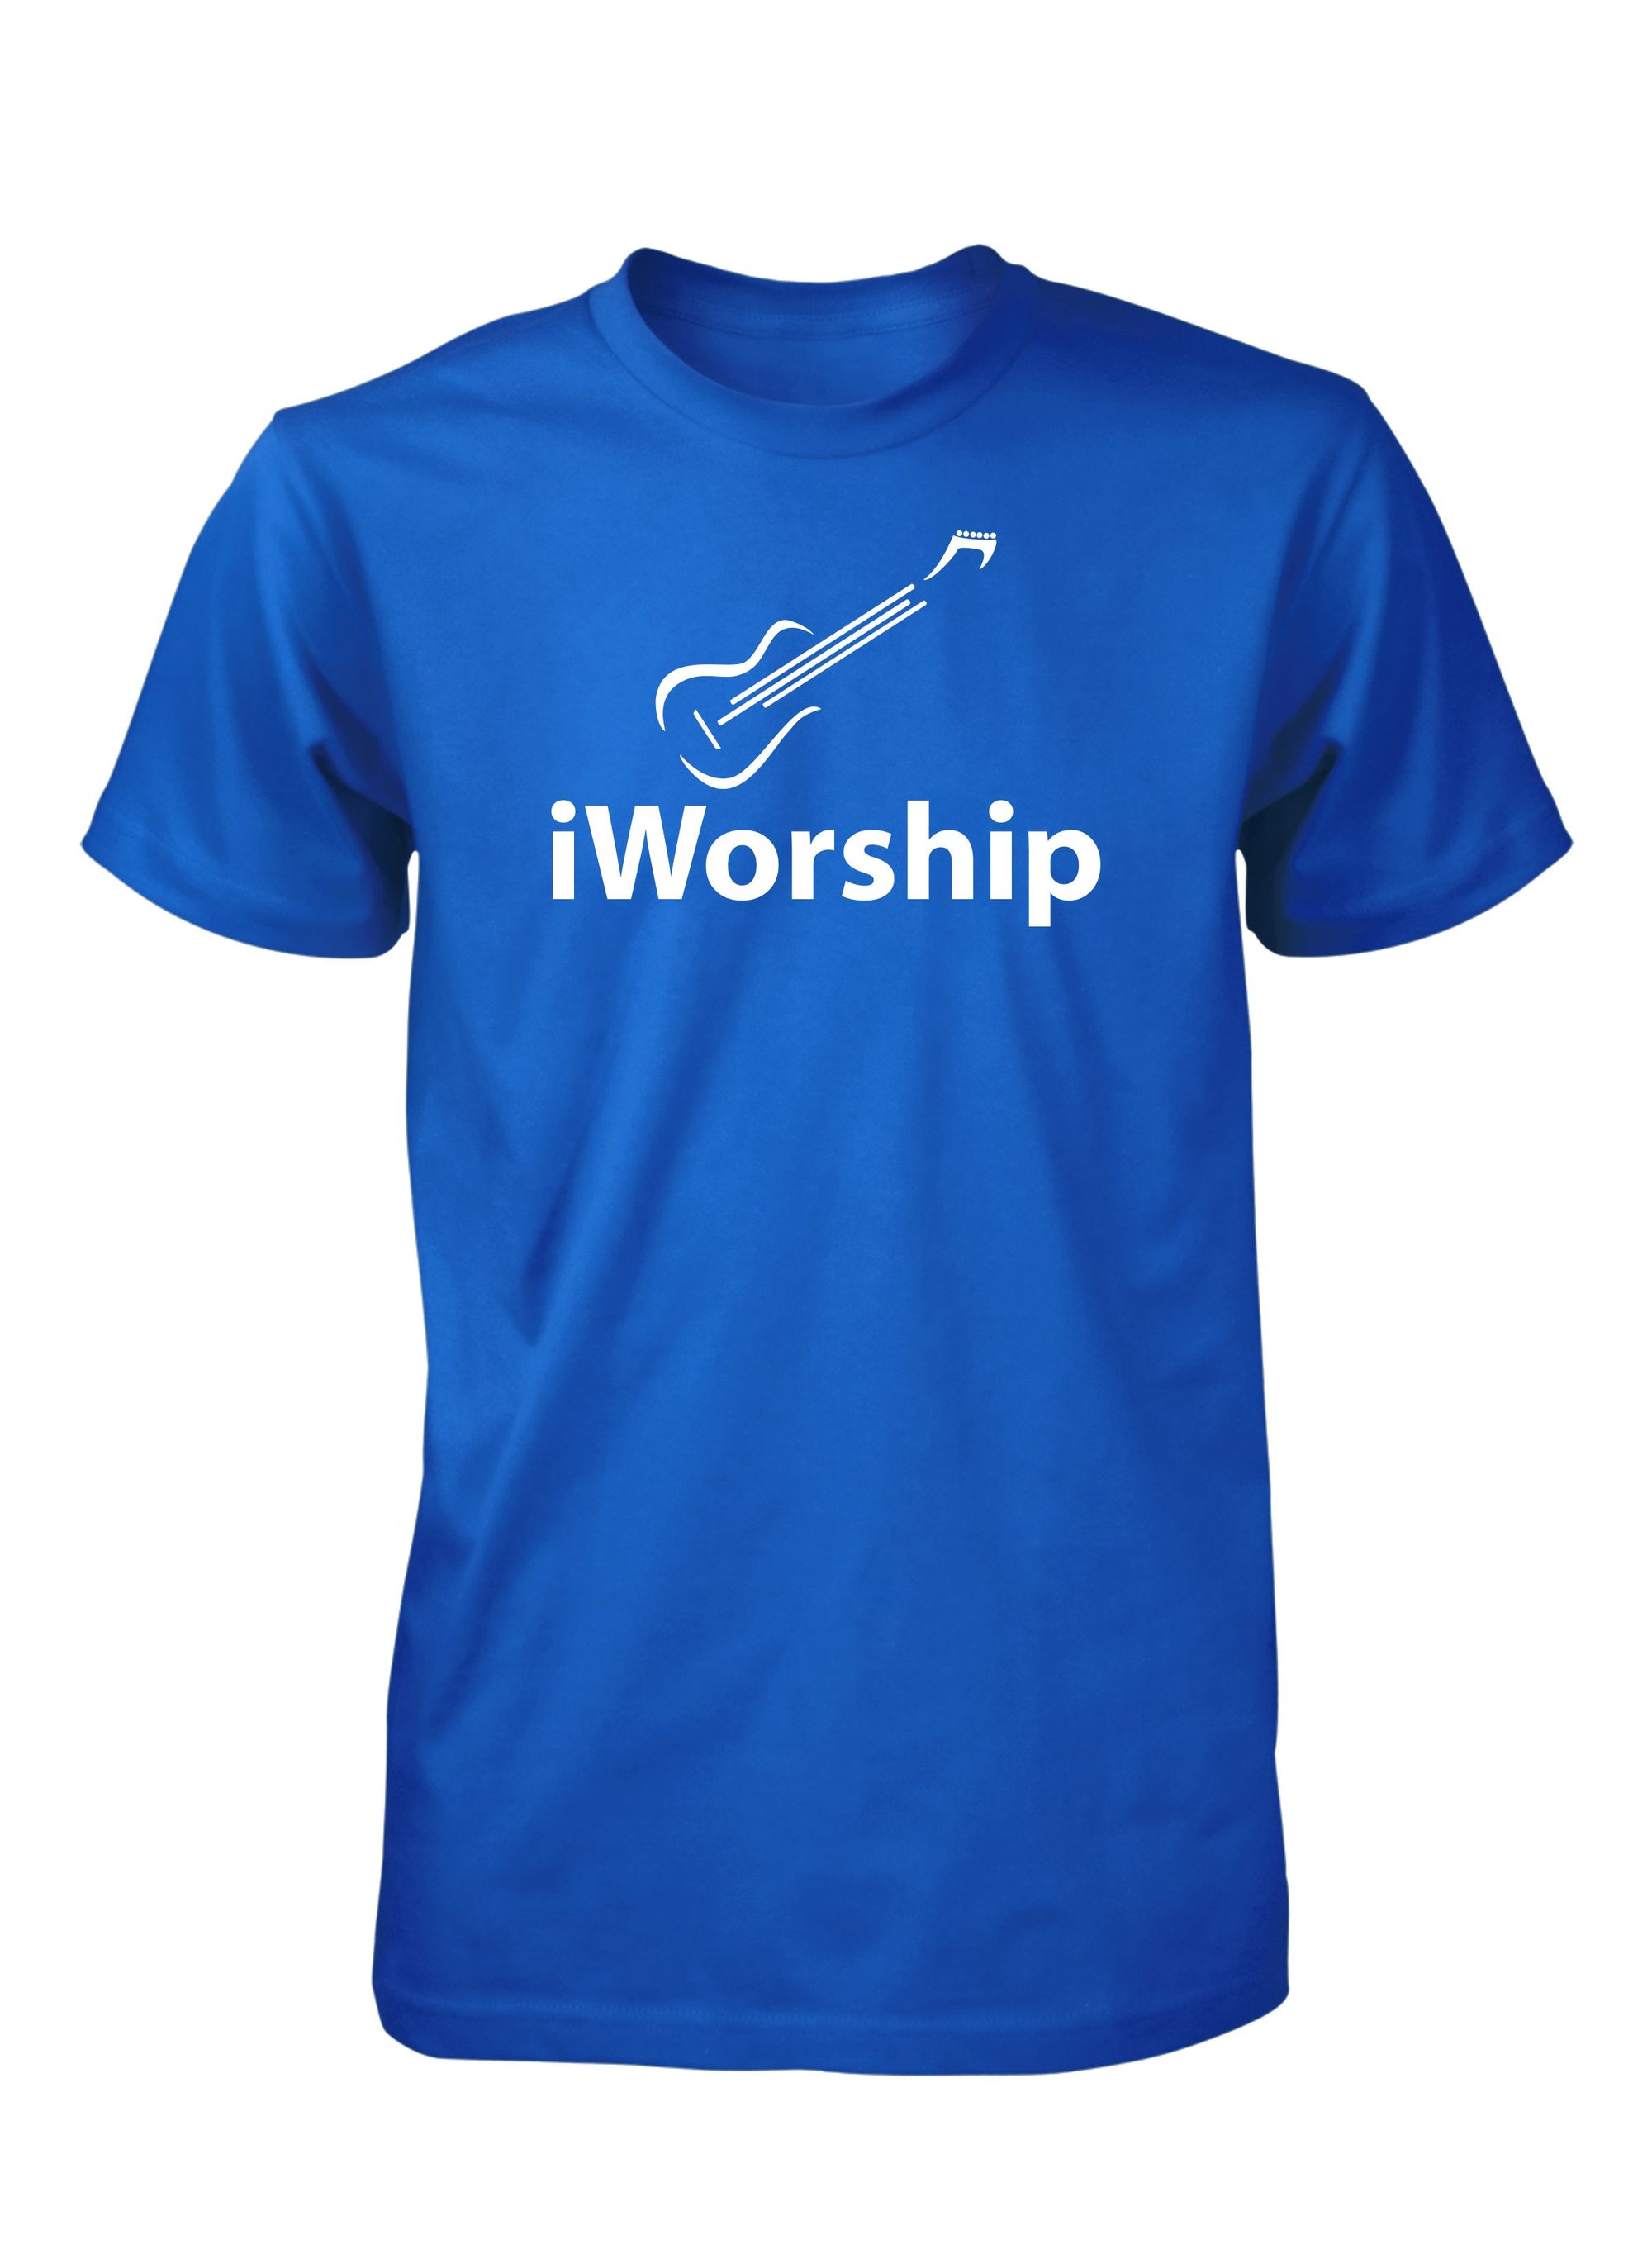 iWorship Praise God Guitar Music Christian Tshirt for Men